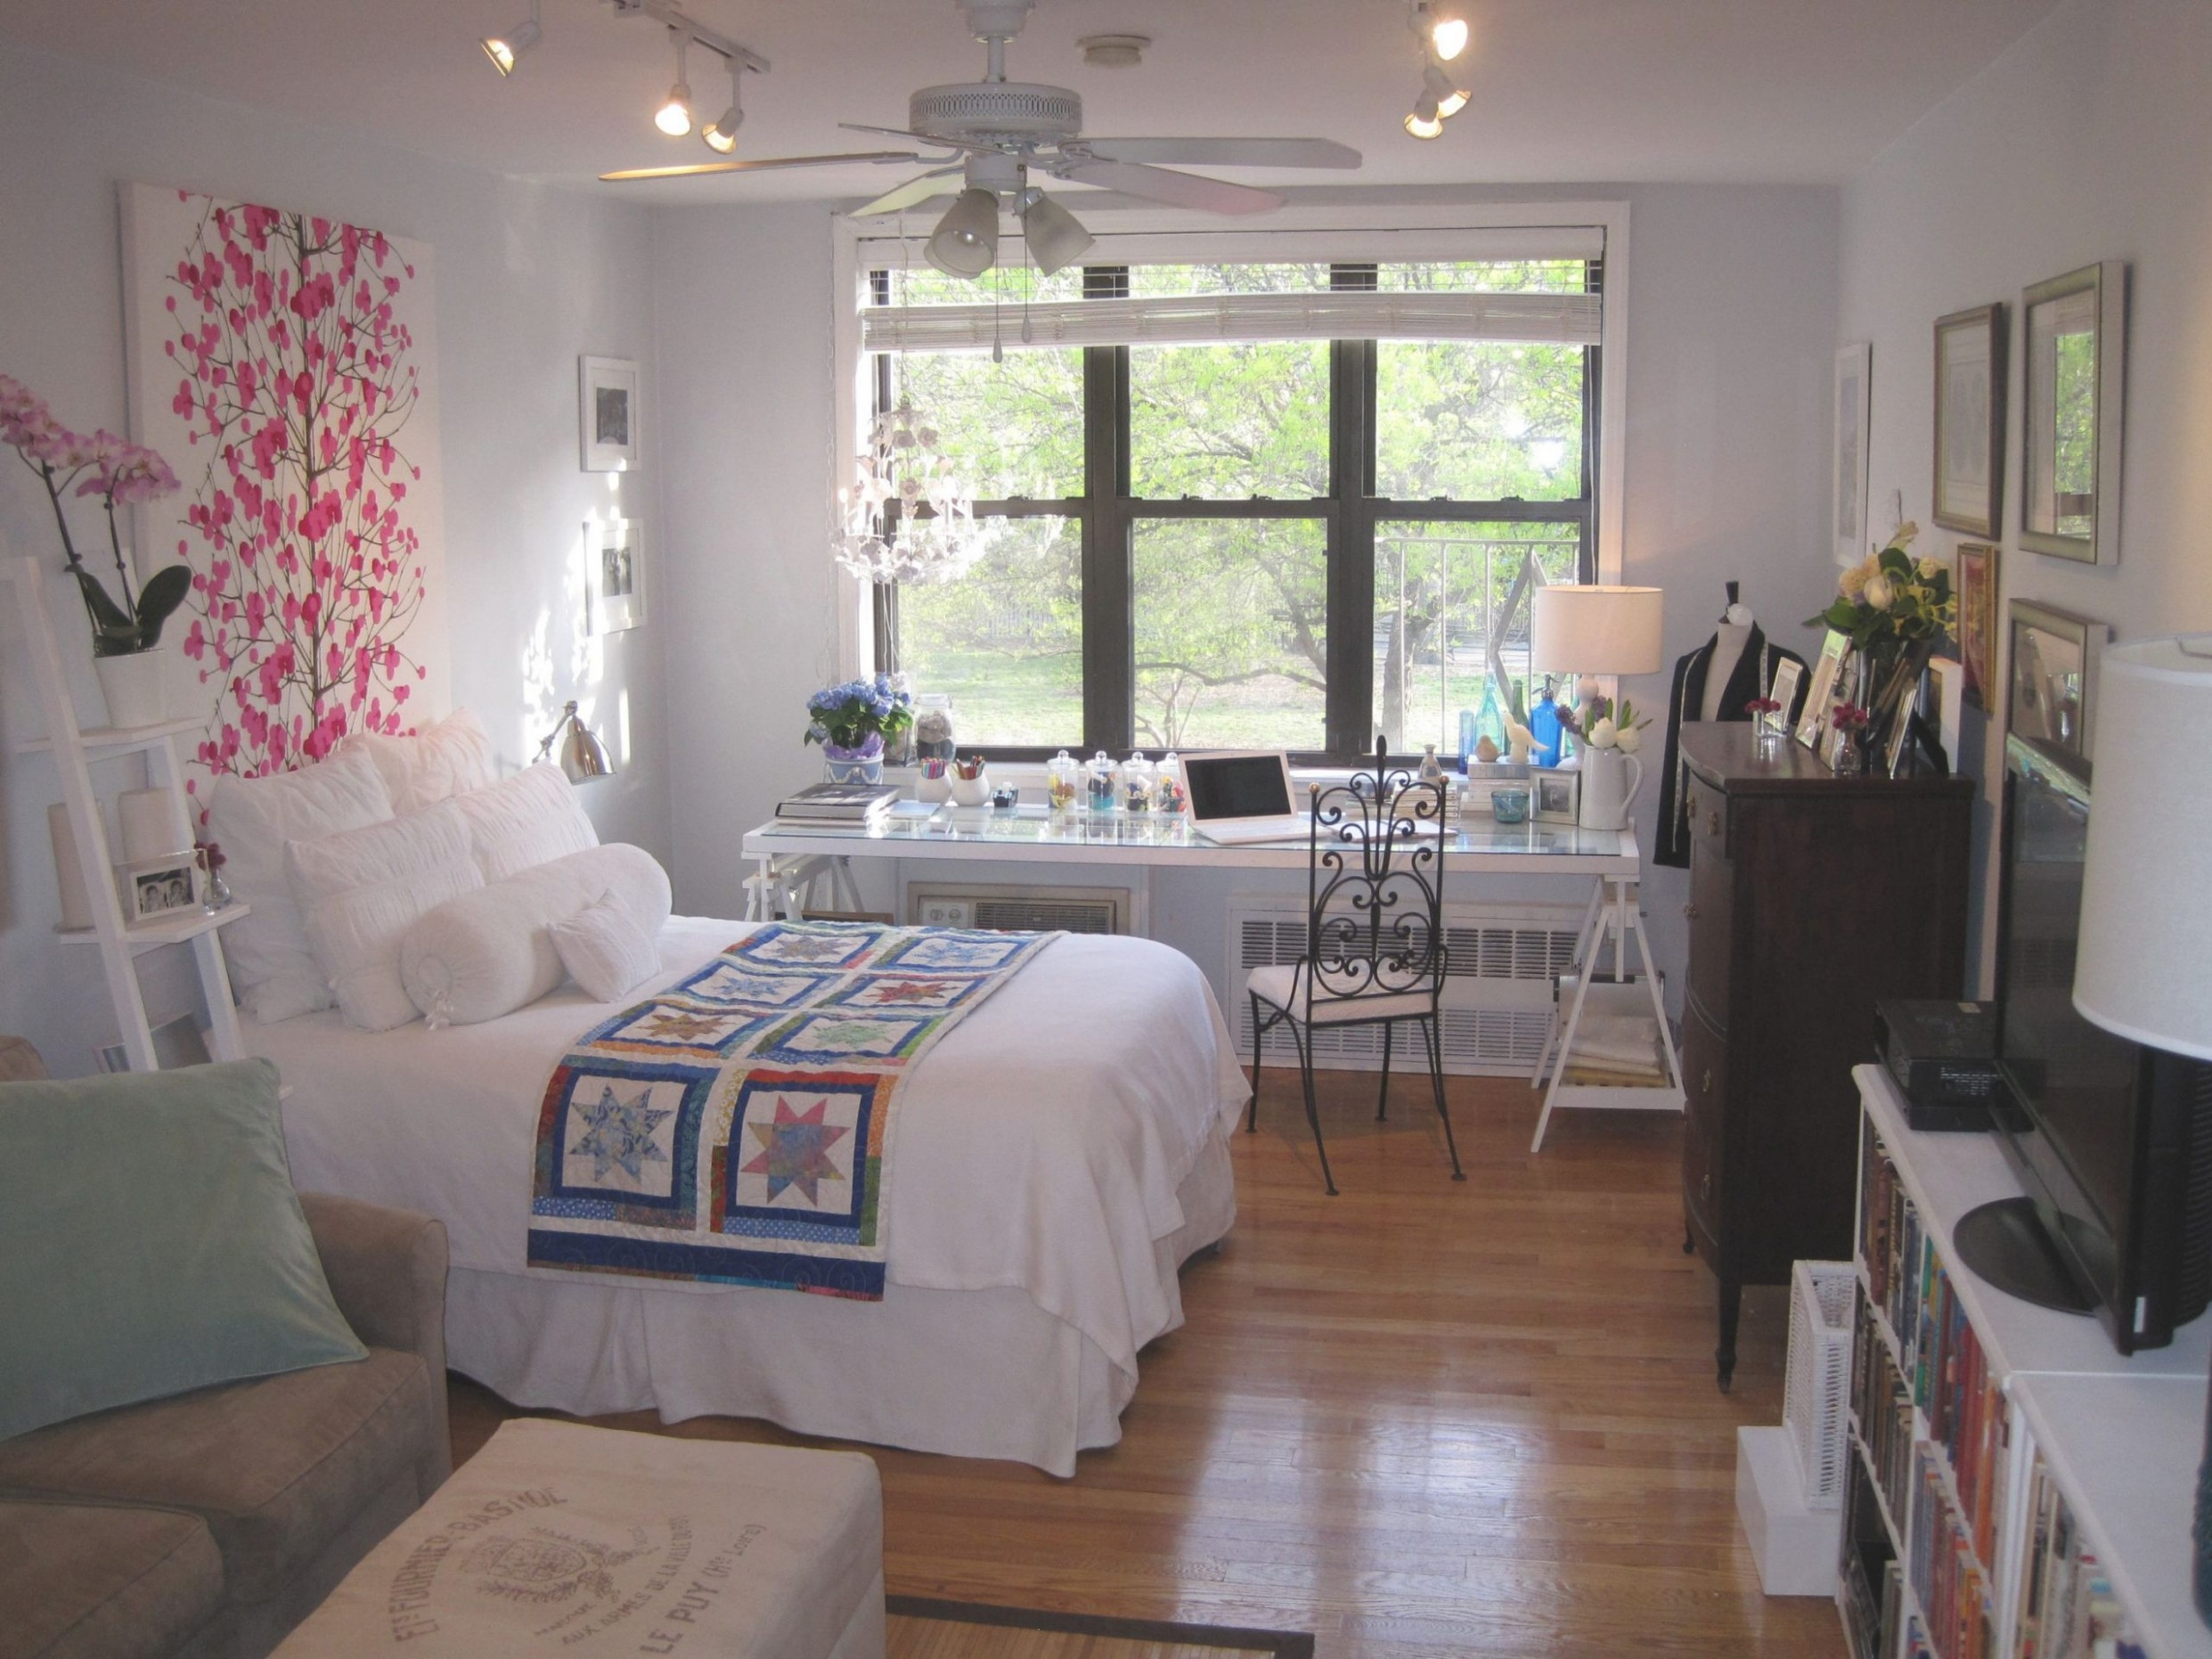 One Bedroom Apartments Decorating Ideas Awesome Cool Small  - One Bedroom Apartment Decorating Ideas With Photos